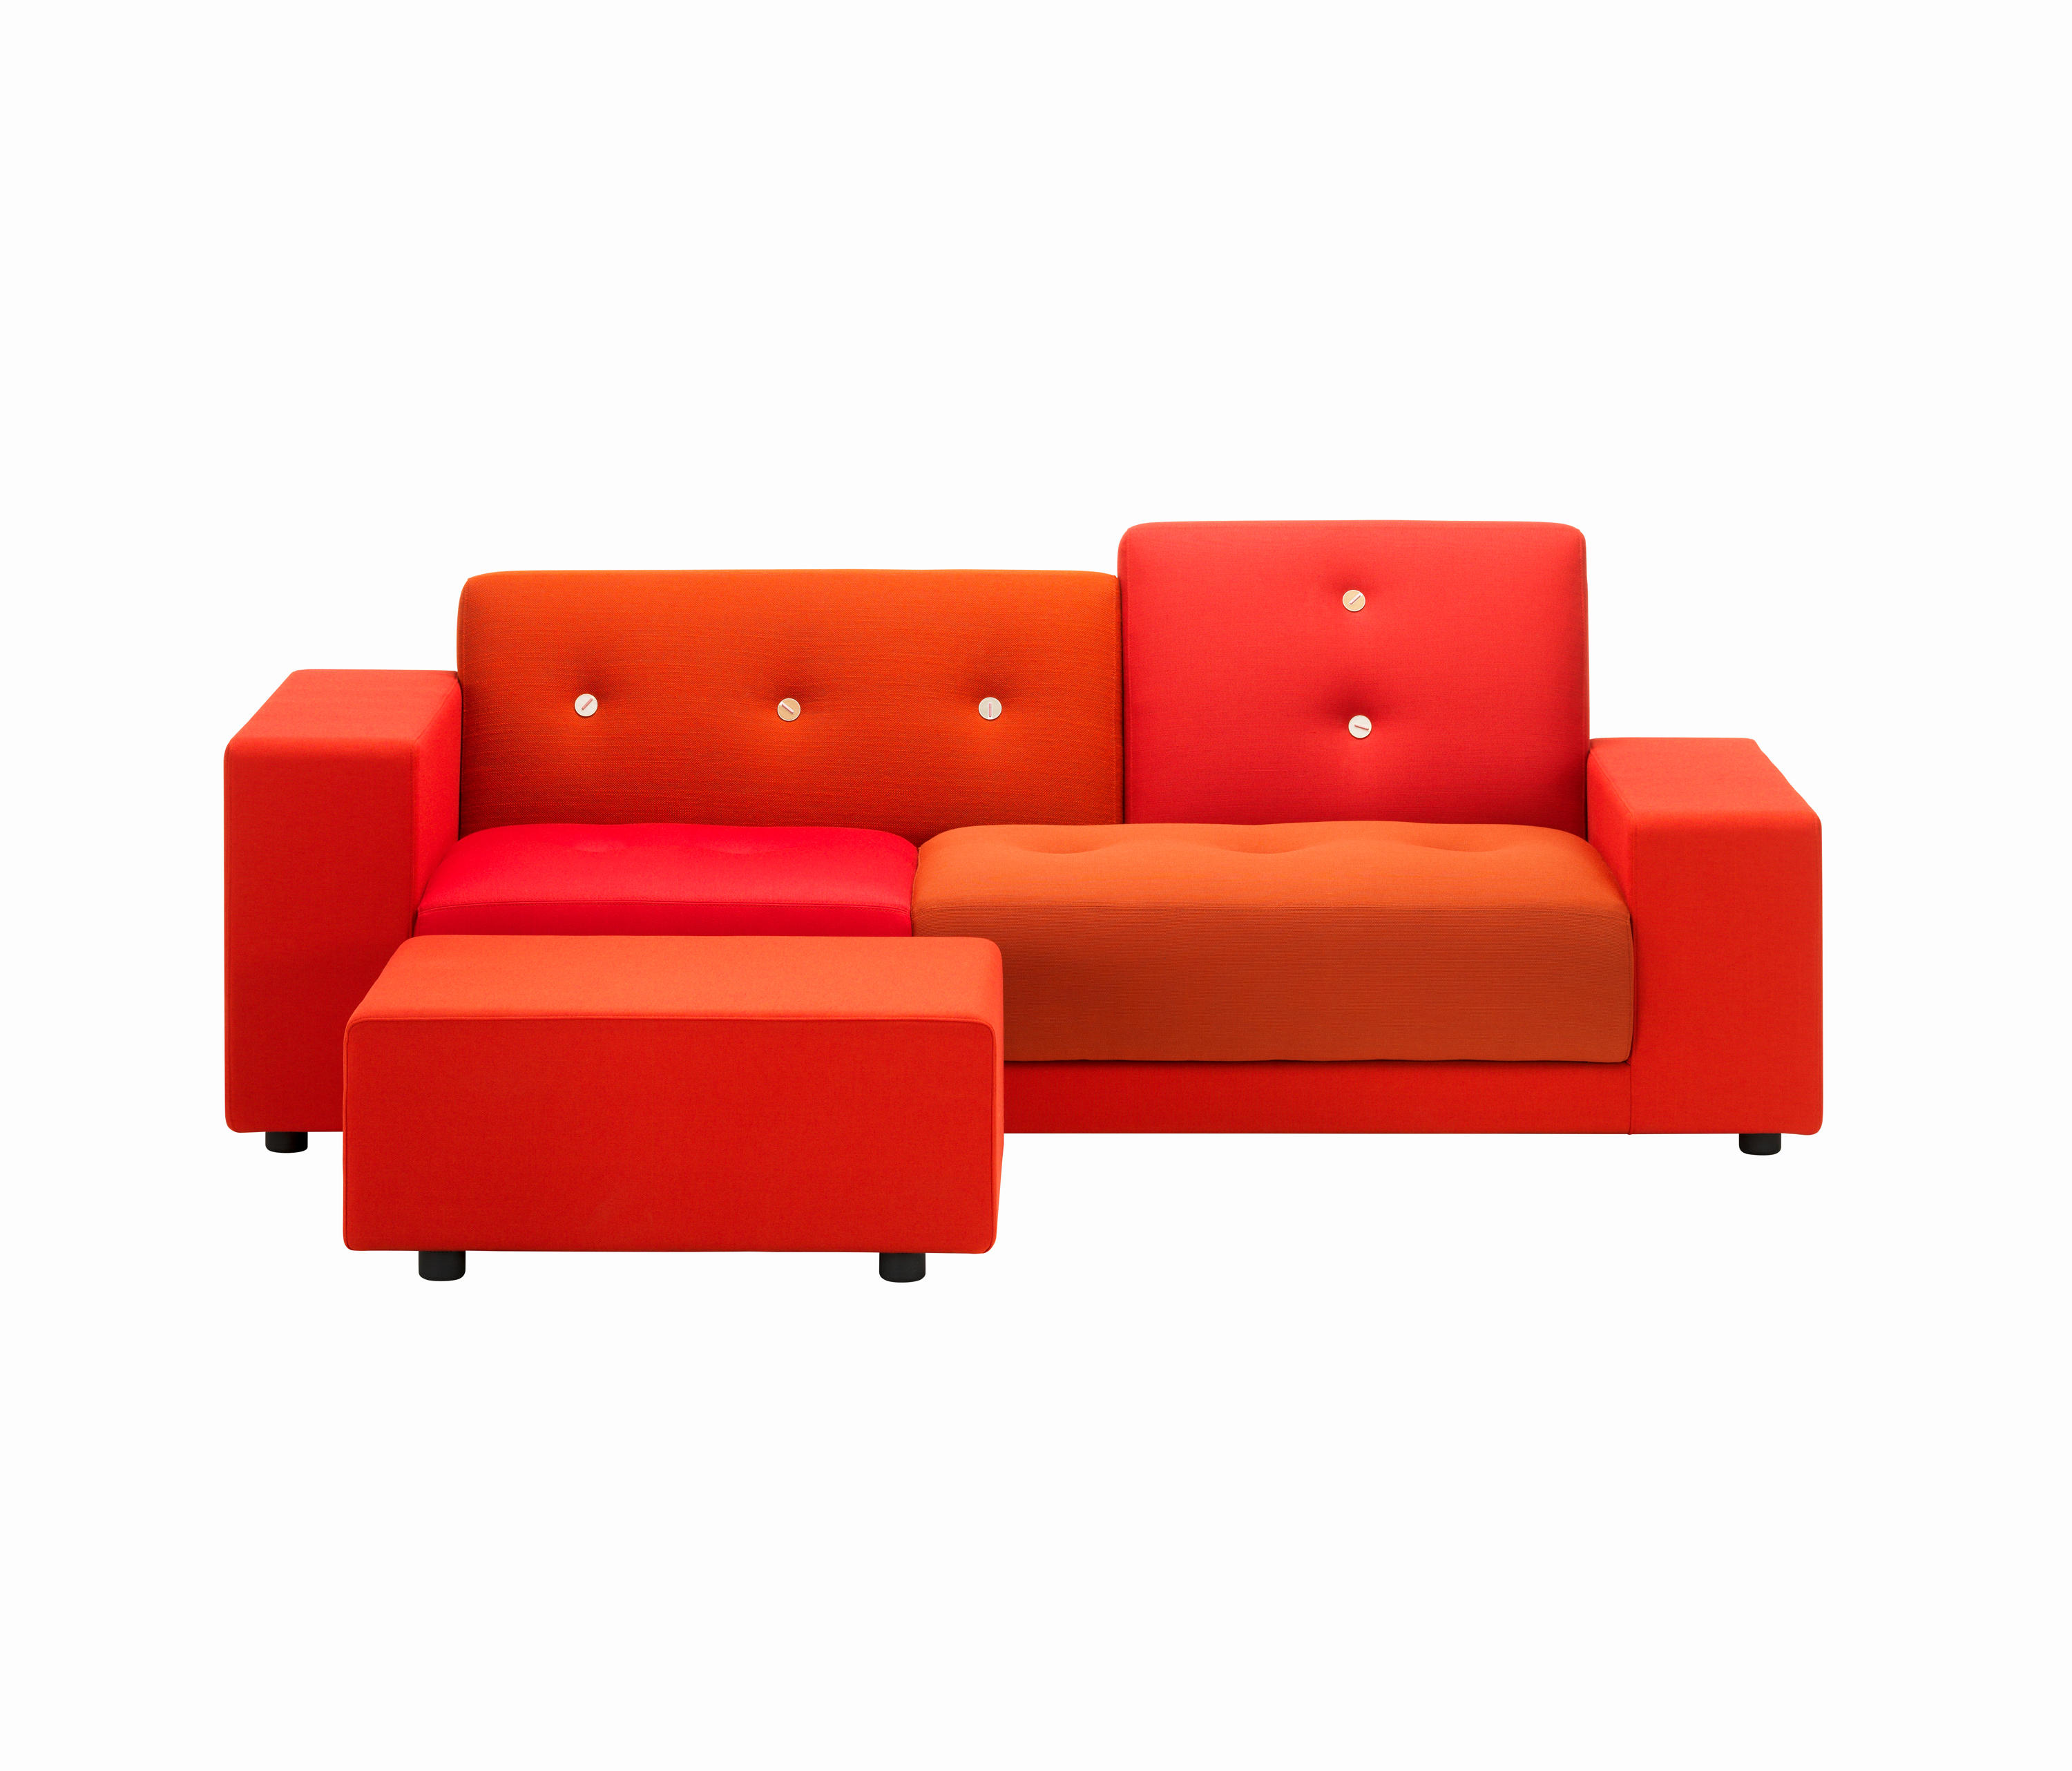 Polder Compact Sofas From Vitra